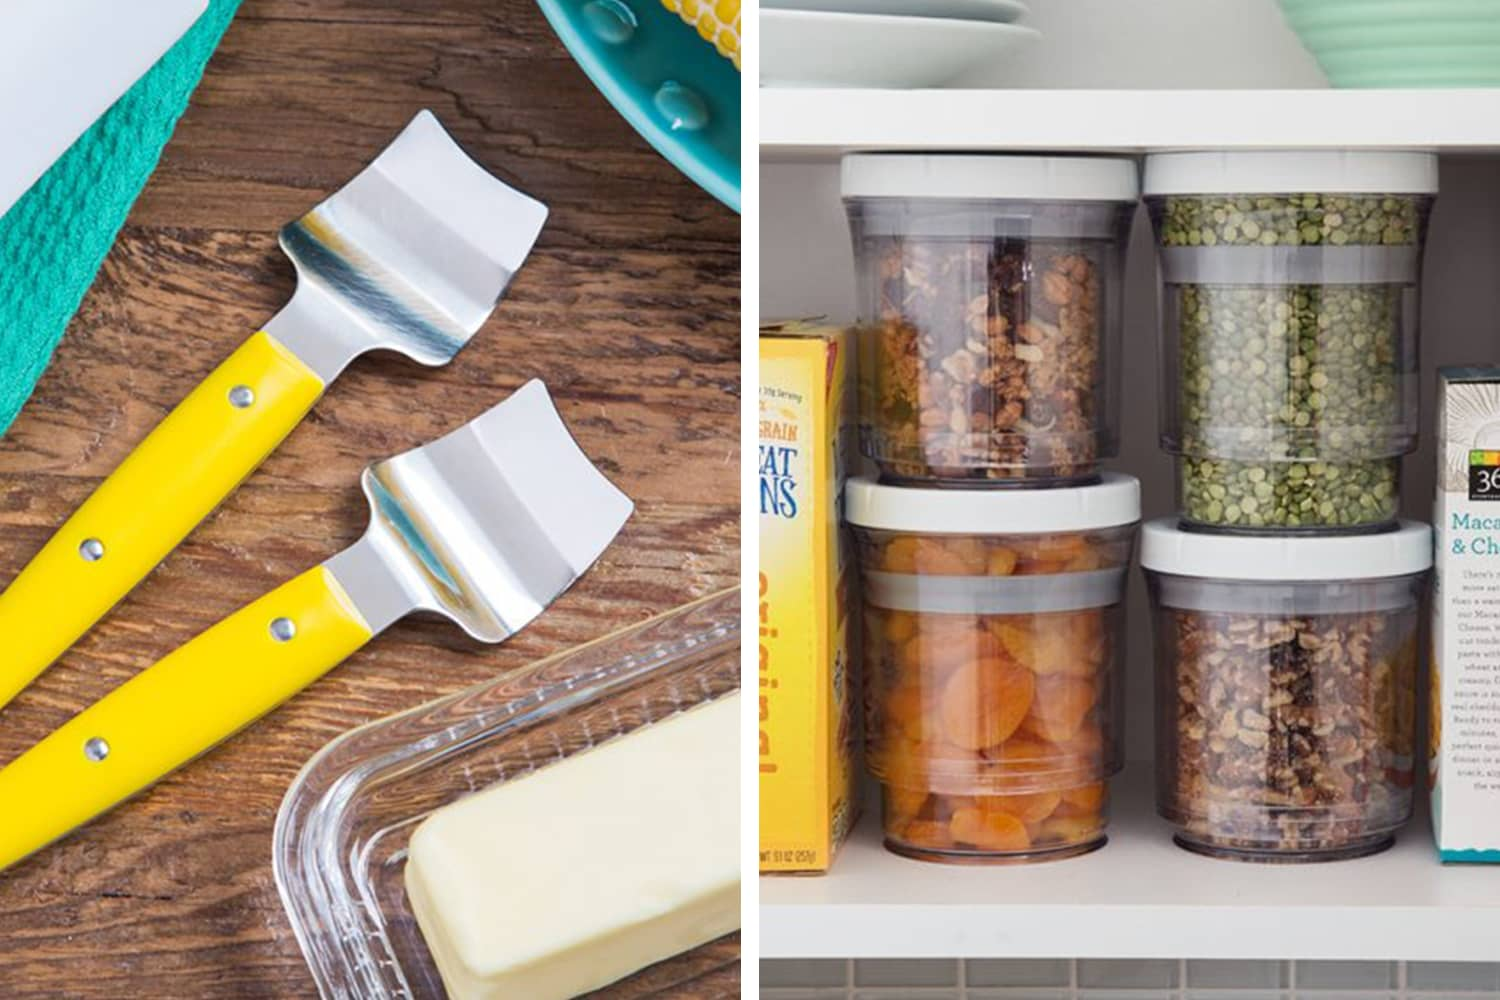 The Grommet Has Loads of Quirky Kitchen Gadgets You Didn't Know You Needed